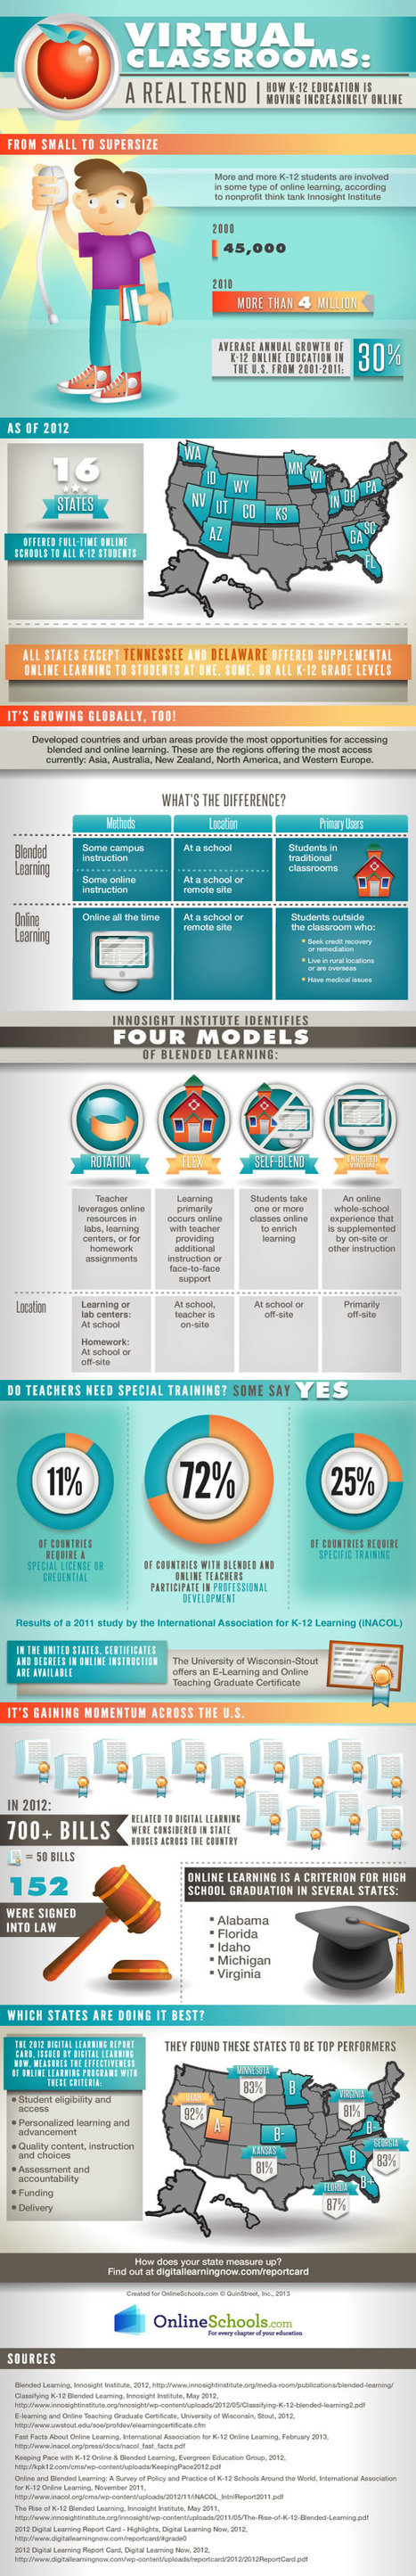 The Teacher's Quick Guide To Blended Learning [Infographic] | desdeelpasillo | Scoop.it